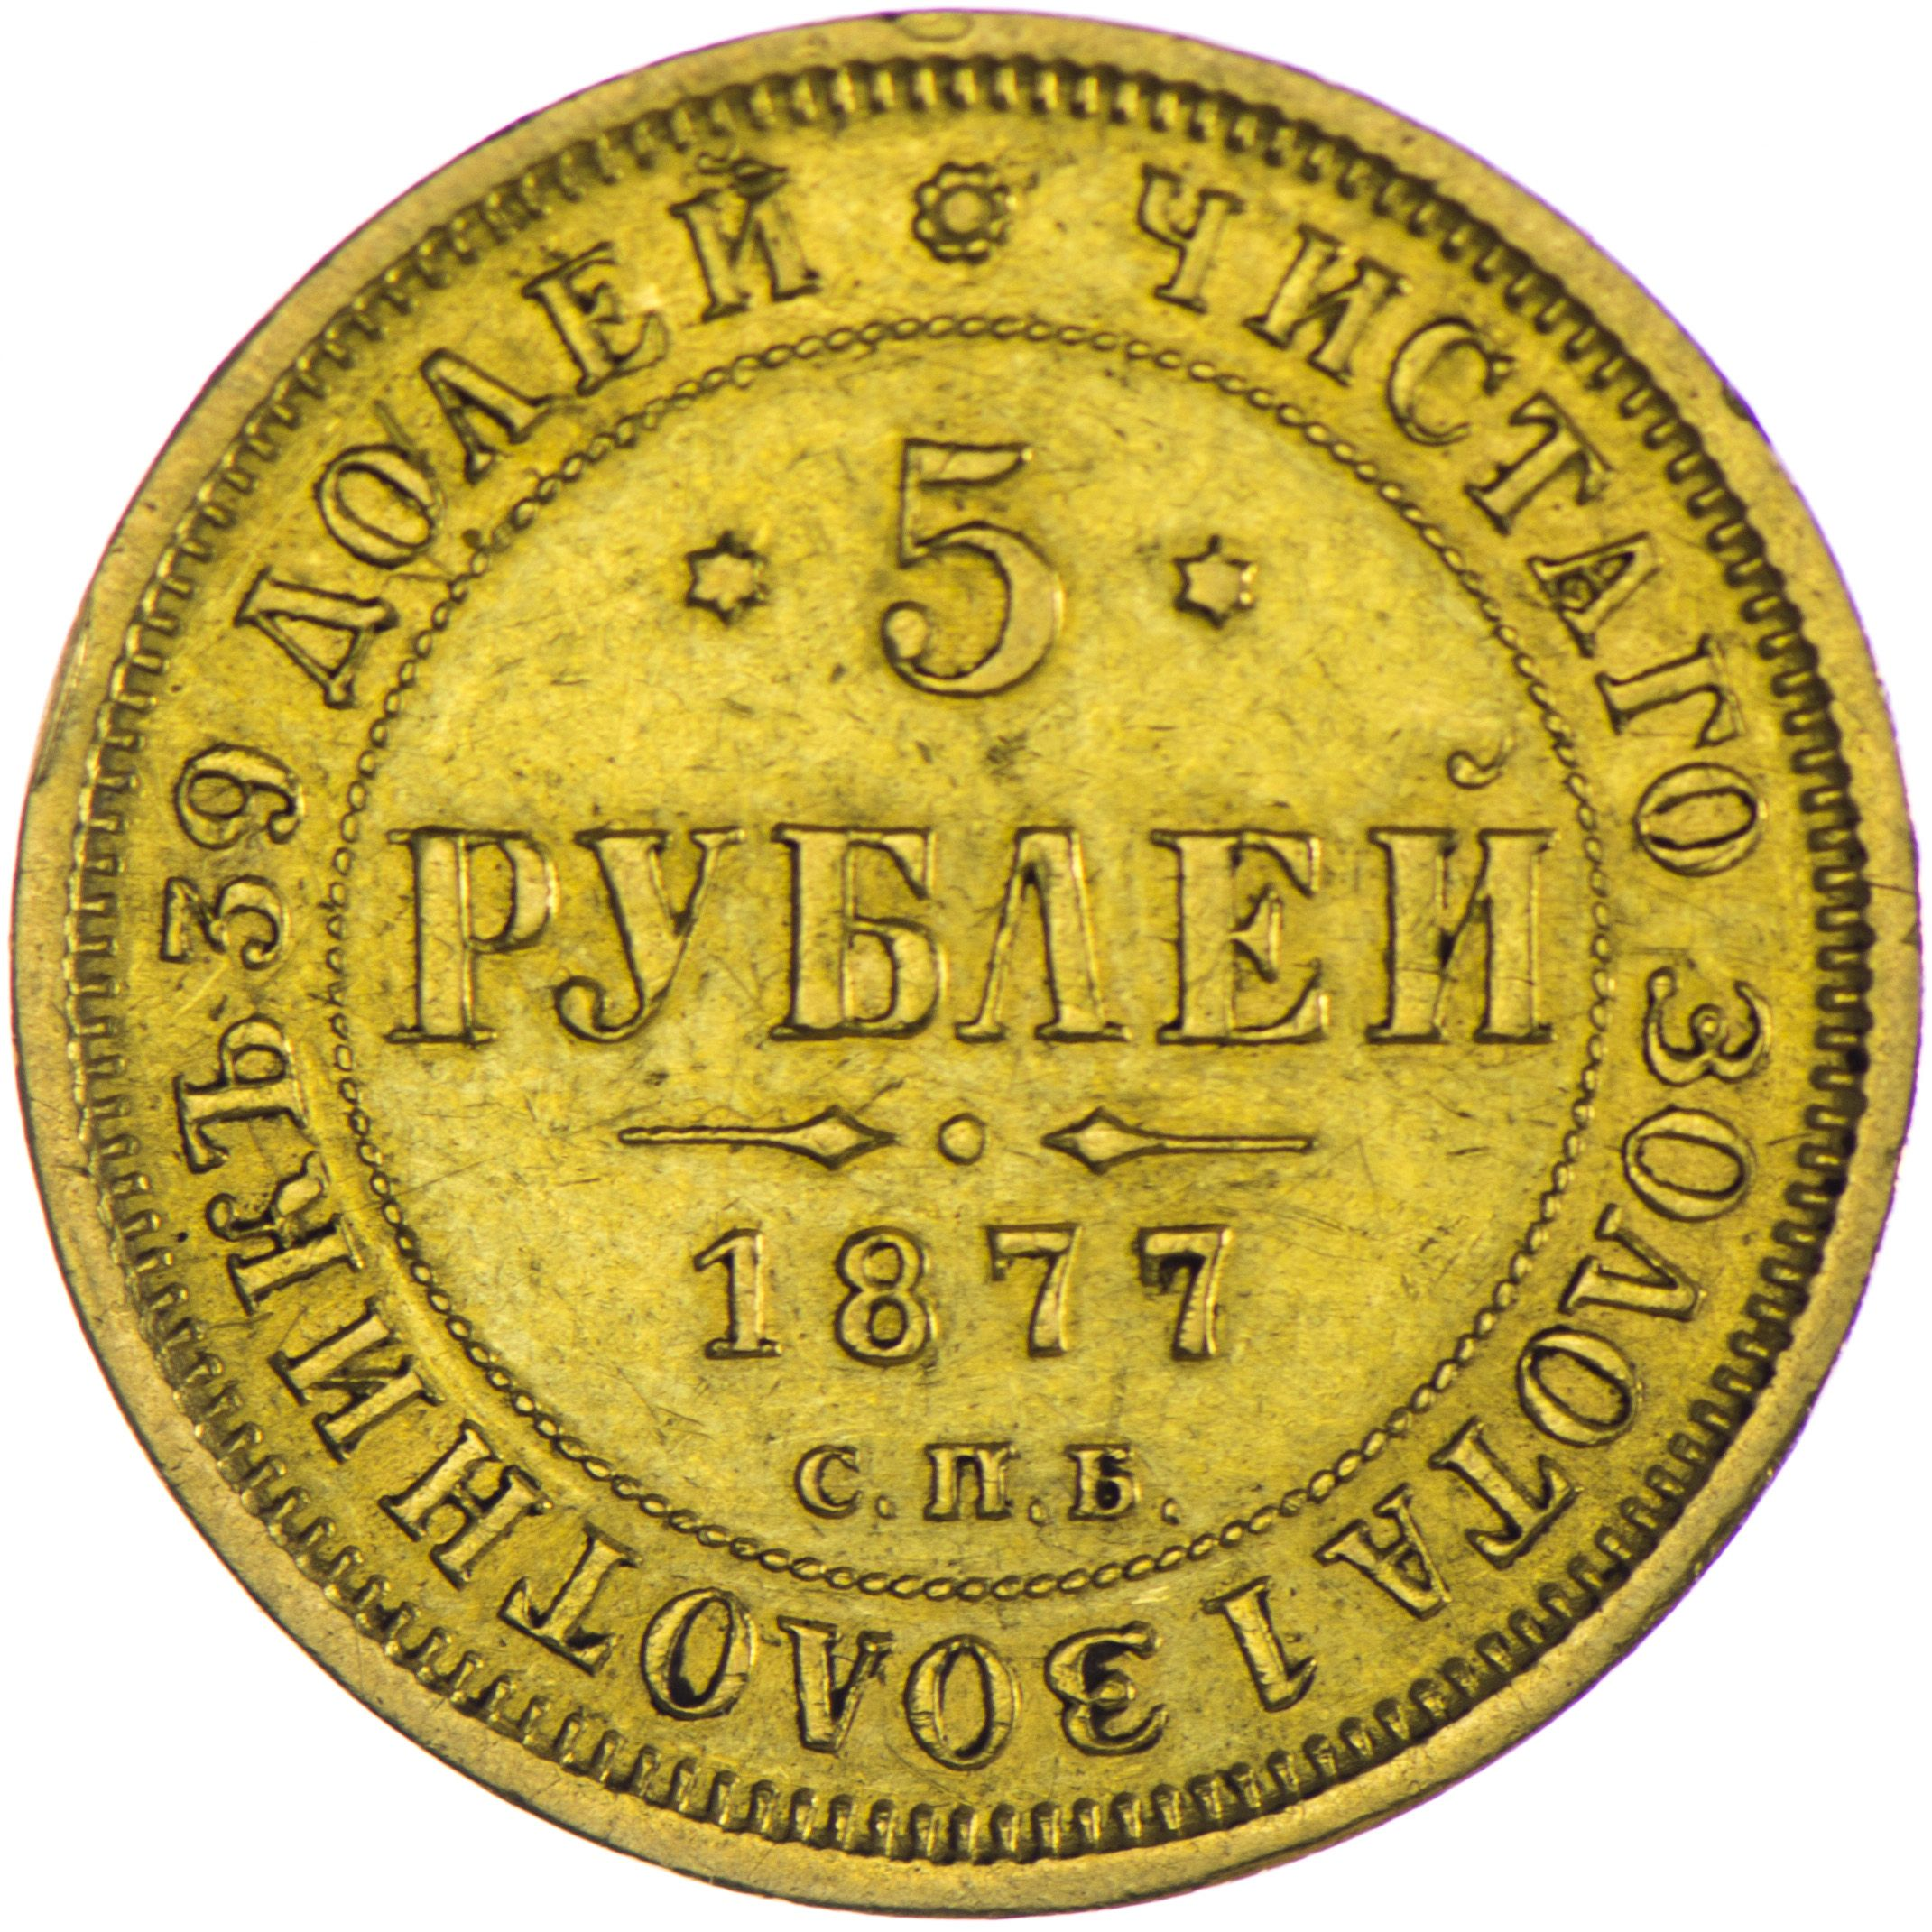 Alexander Ii 1855 1881 5 Rubel 1877 Gold Coins Personalized